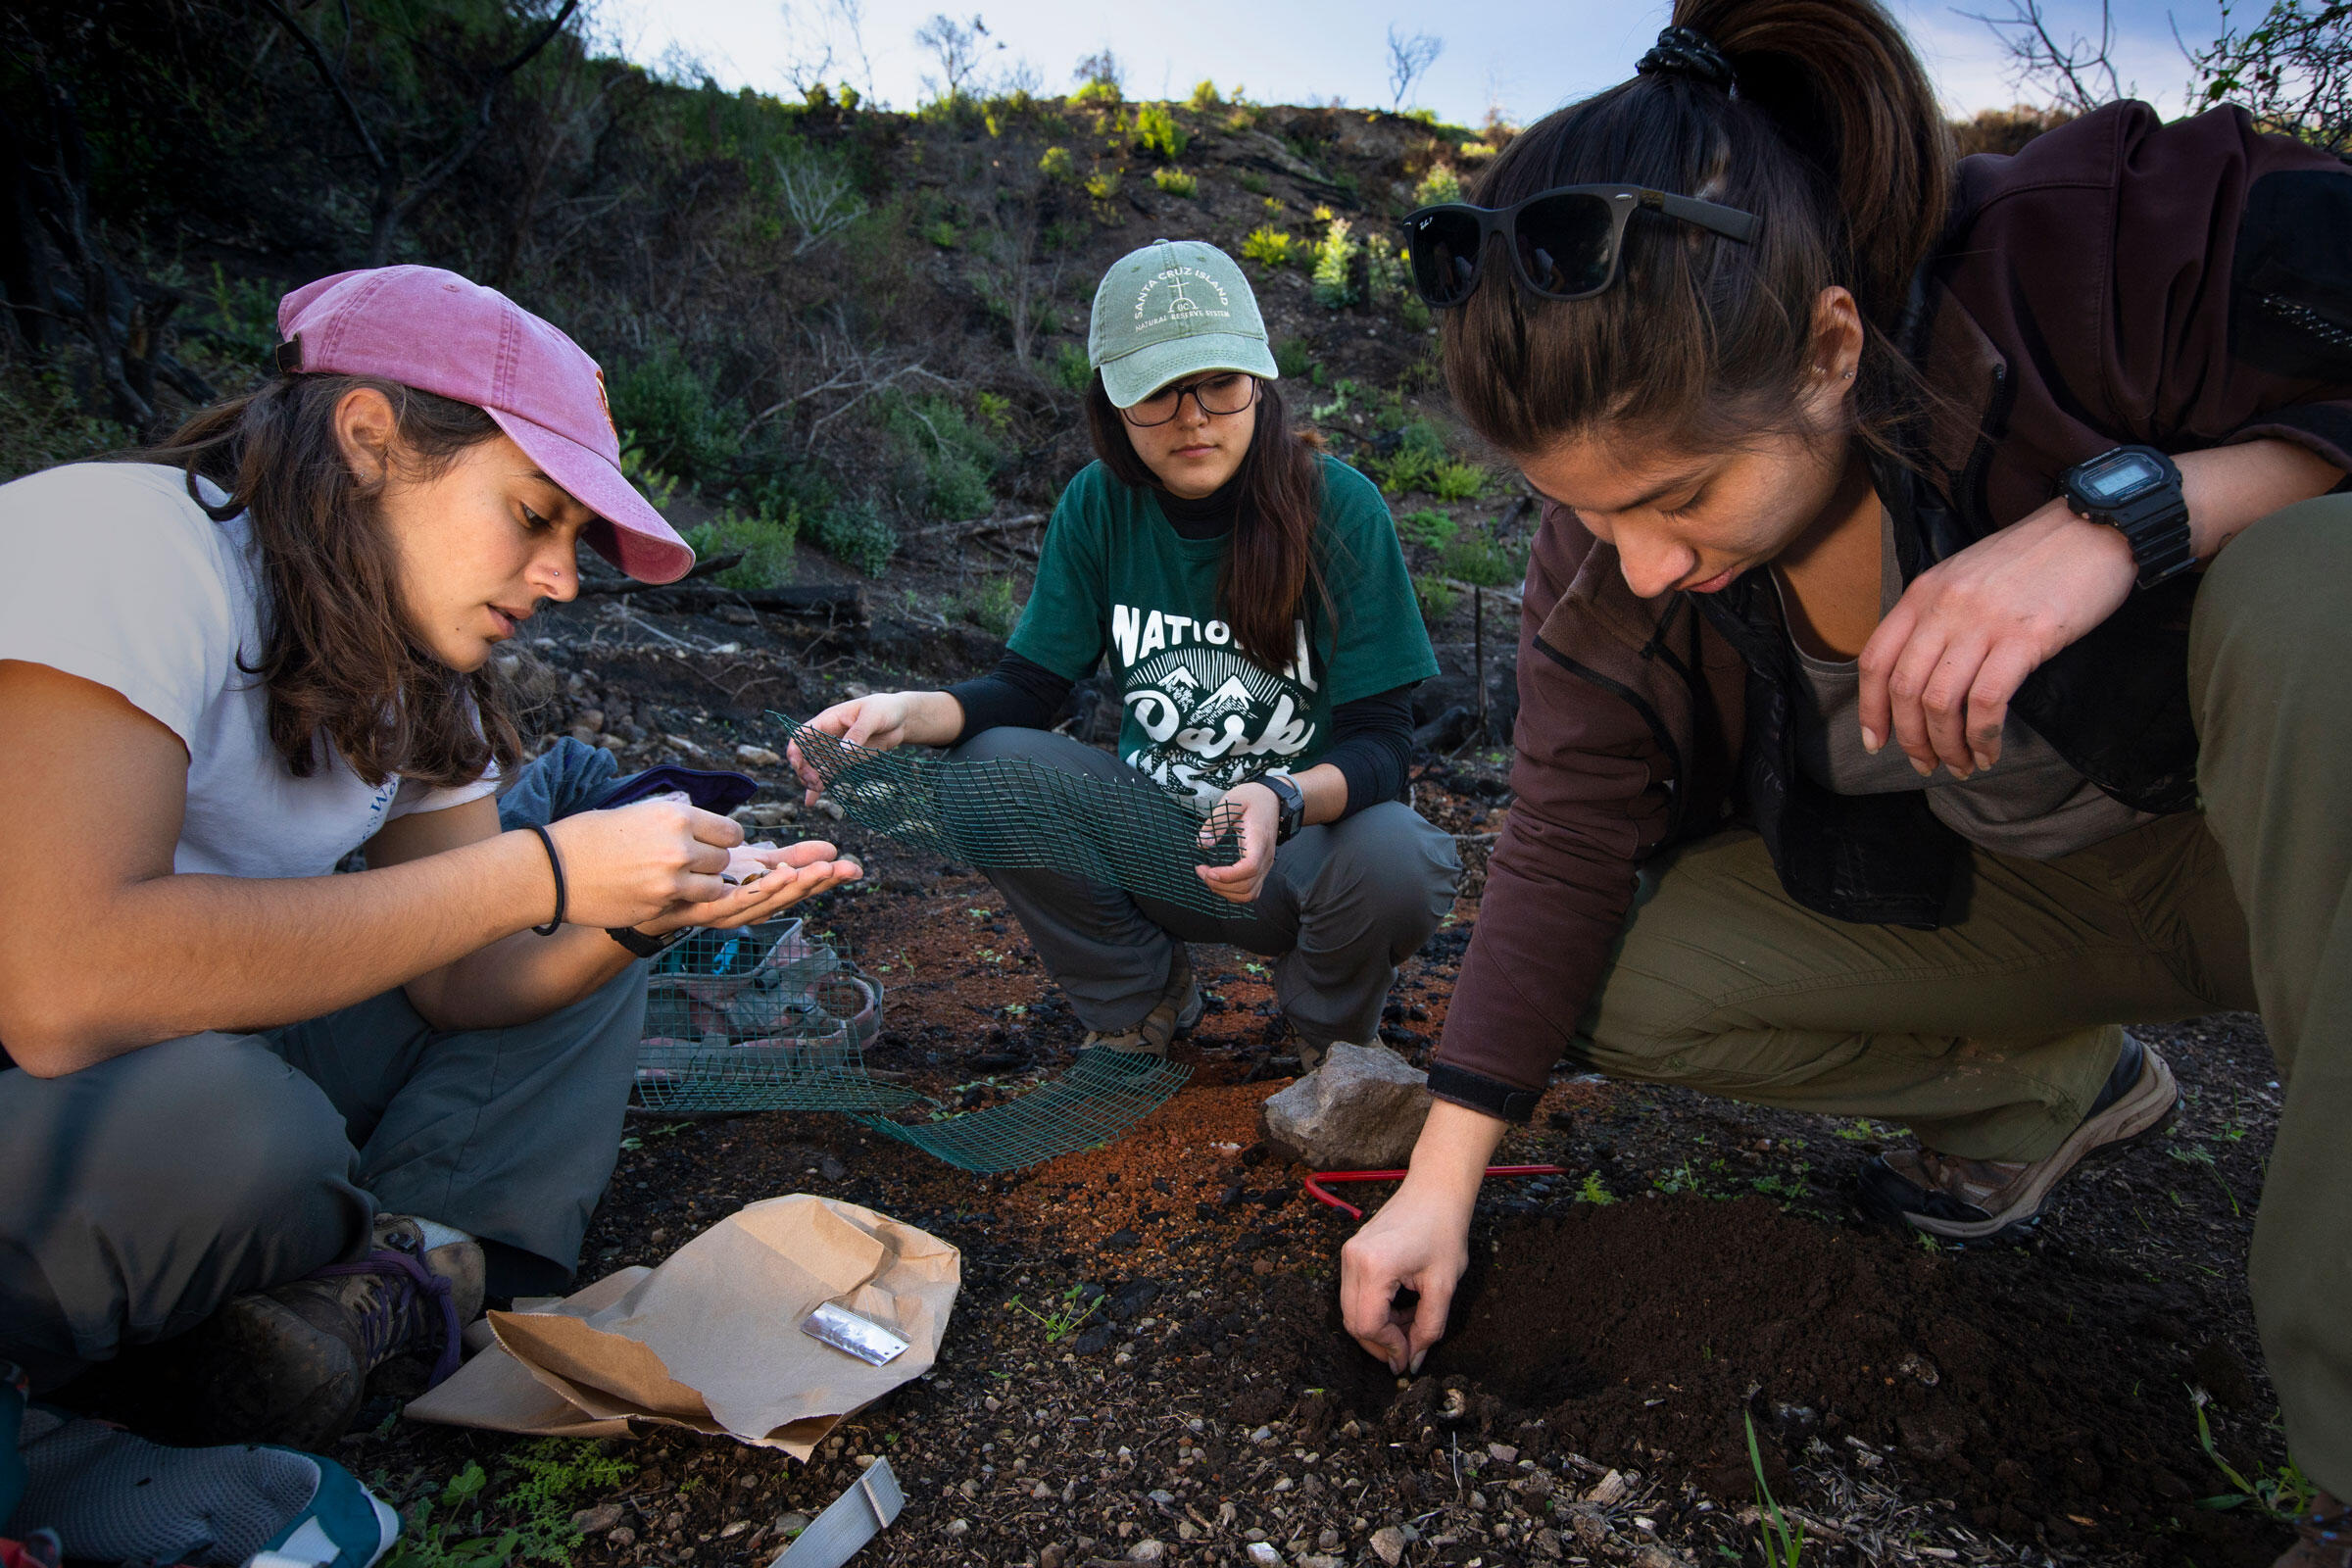 The three undergraduate field techs visited the island each weekend through the winter, between classes and part-time jobs. Morgan Heim